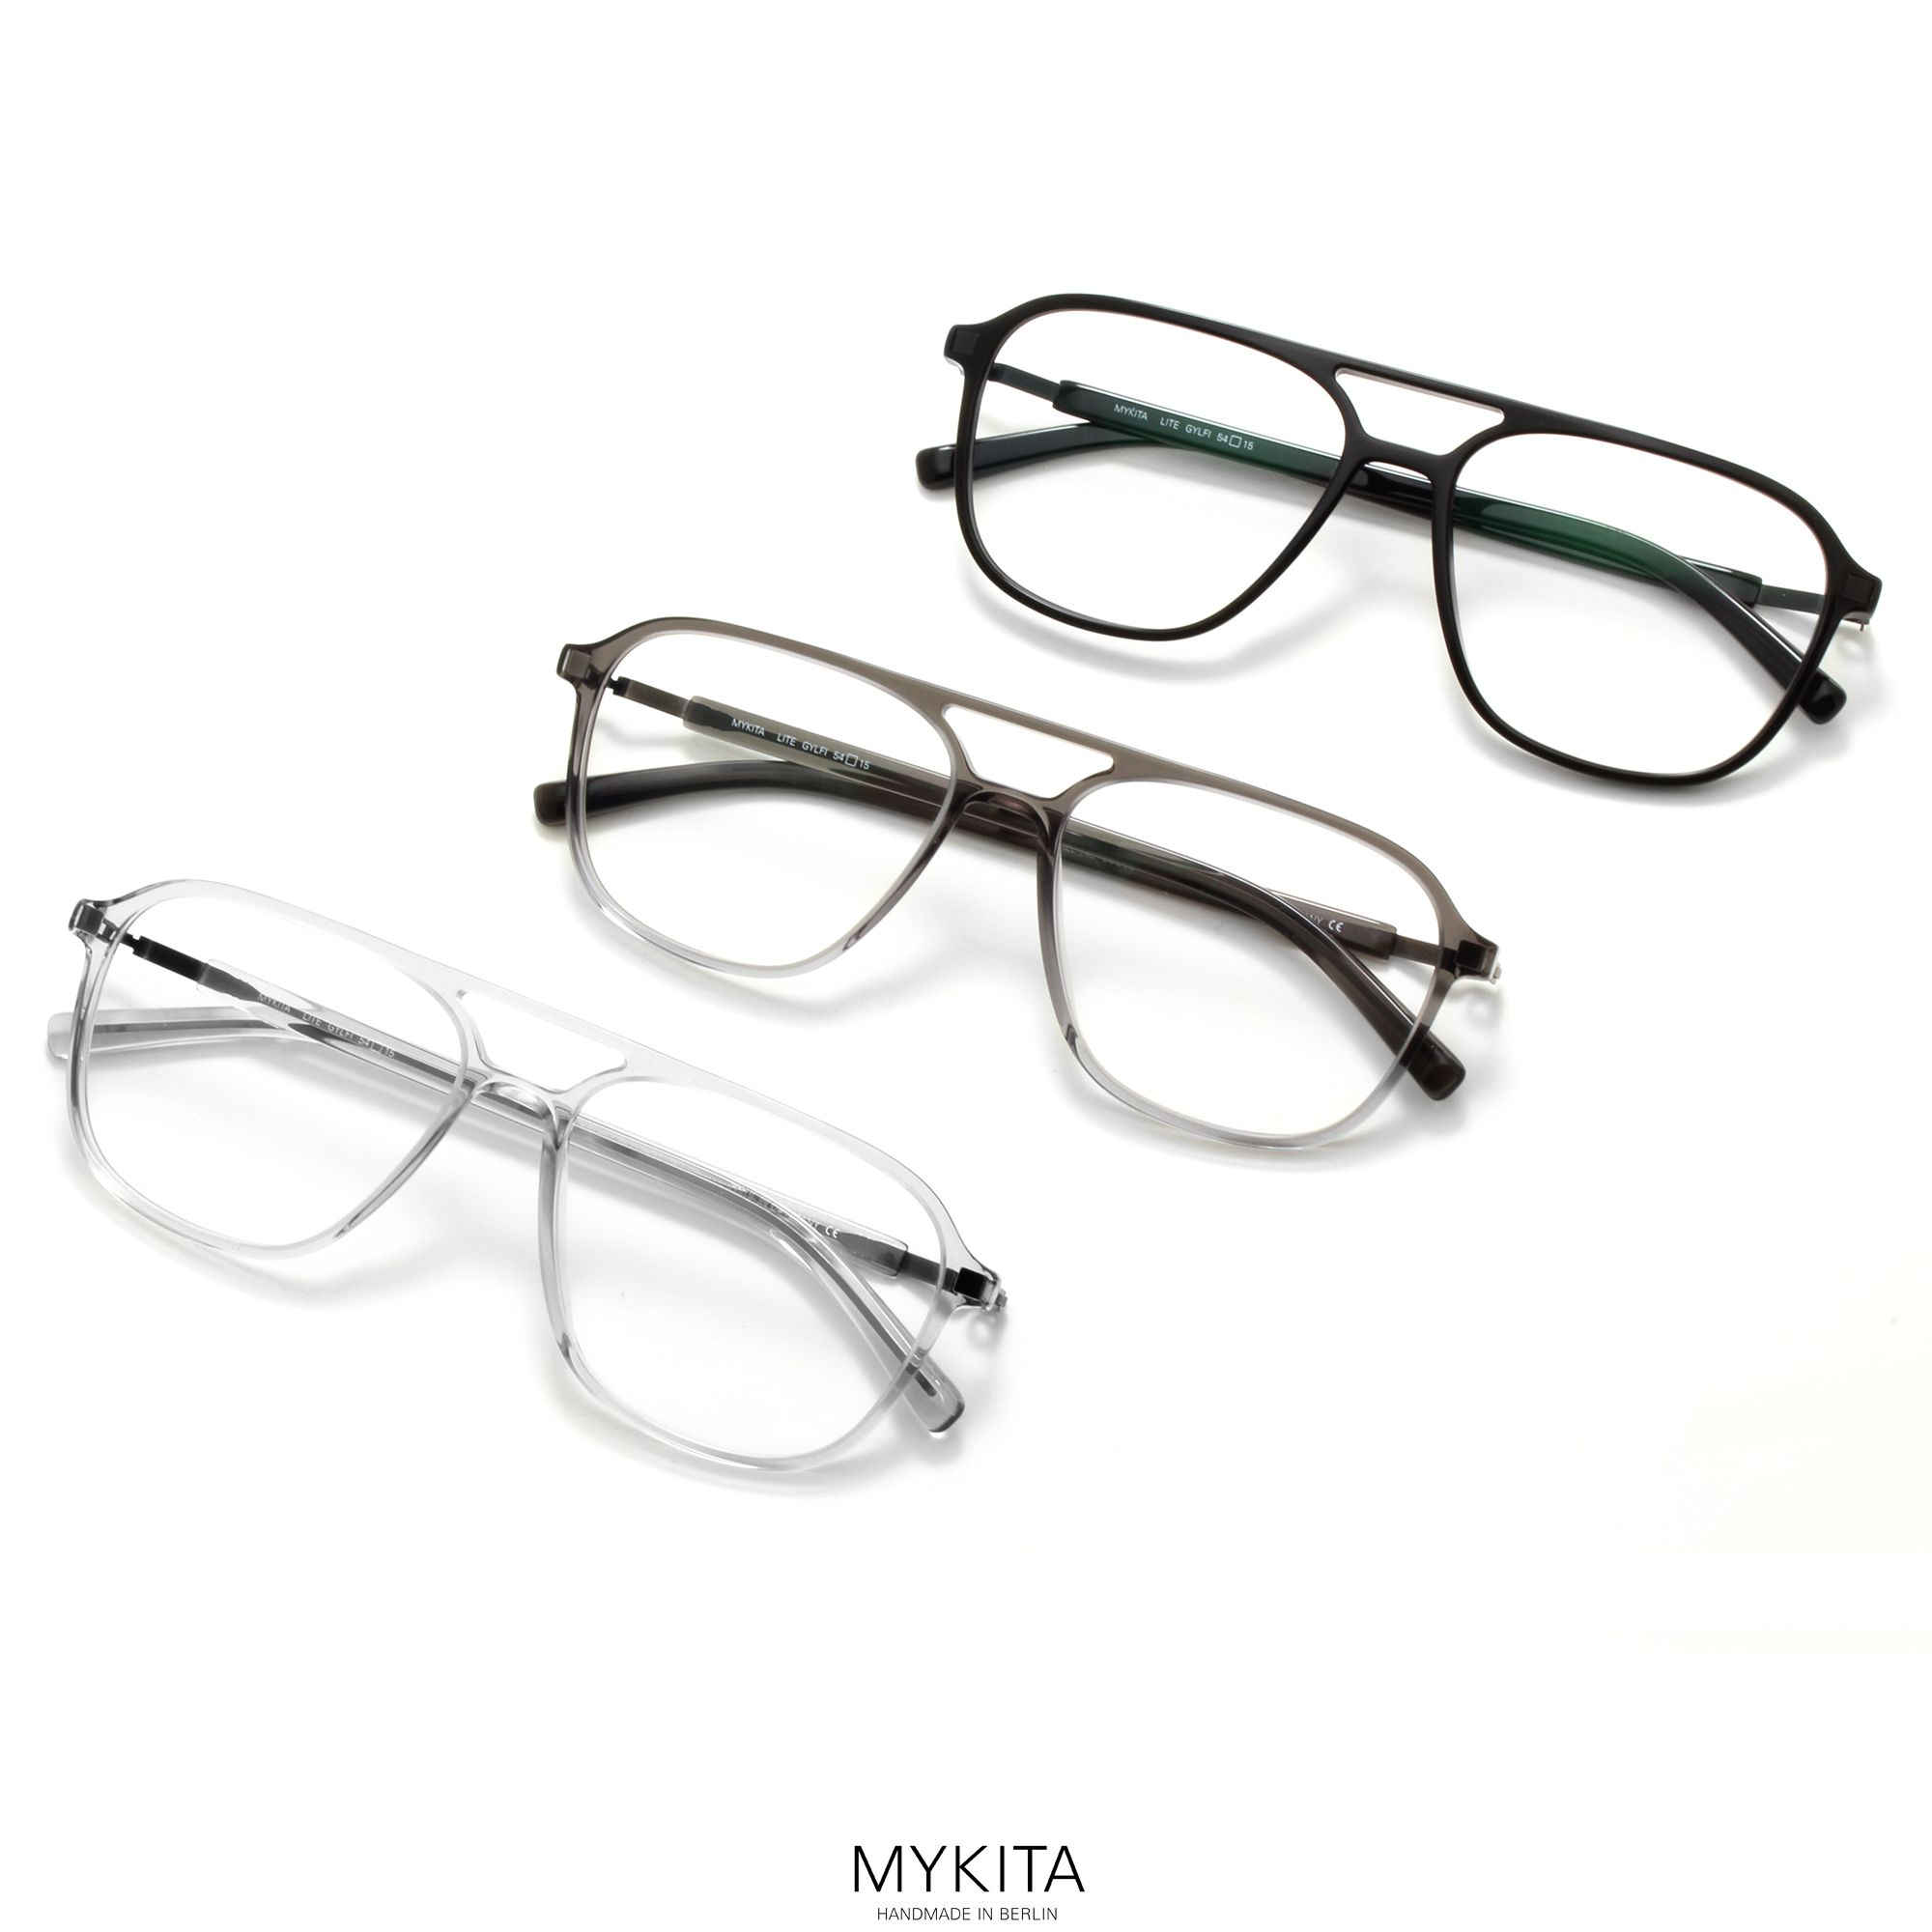 8d0171a699 The MYKITA    GYLFI is a material mix where the warmth of an aviator shaped